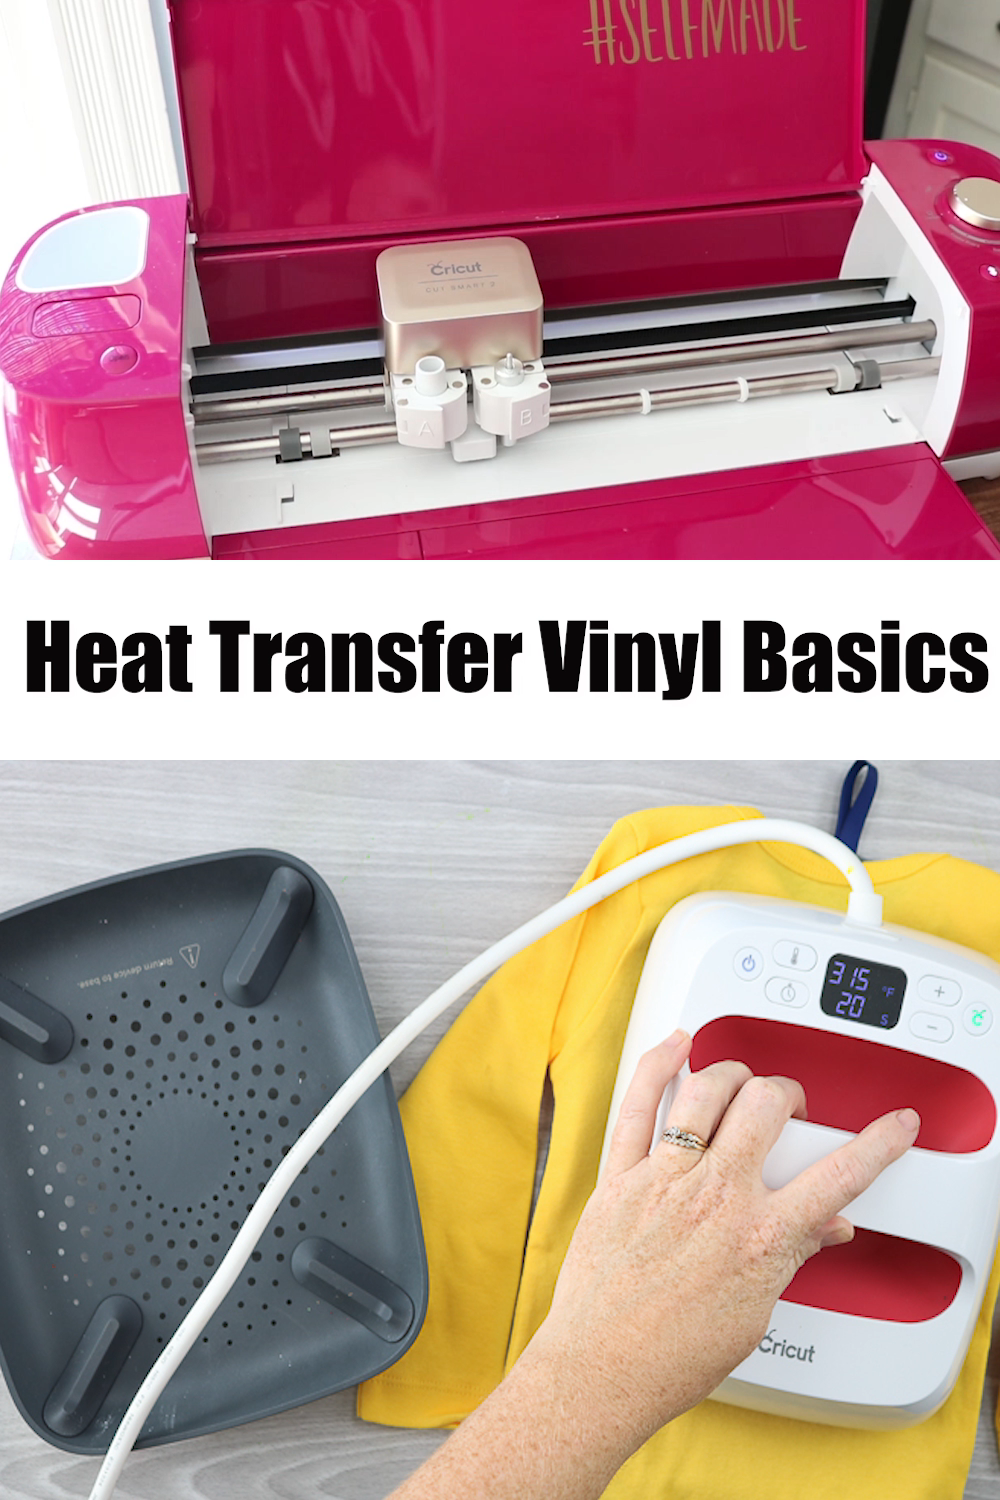 If you are confused about Heat Transfer Vinyl, this is the only post you need! Includes video as well as step by step instructions for cutting, weeding, and applying iron-on to all of your shirts and so much more! This is a great beginner's guide for new Cricut users! #cricut #cricutbeginner #heattransfervinyl #htv #ironon #basics #video #cricutvideo #cricuthowto #cricuttutorial #cricutbasics #crafts #diy #howto #tutorial #easypress #cricuteasypress